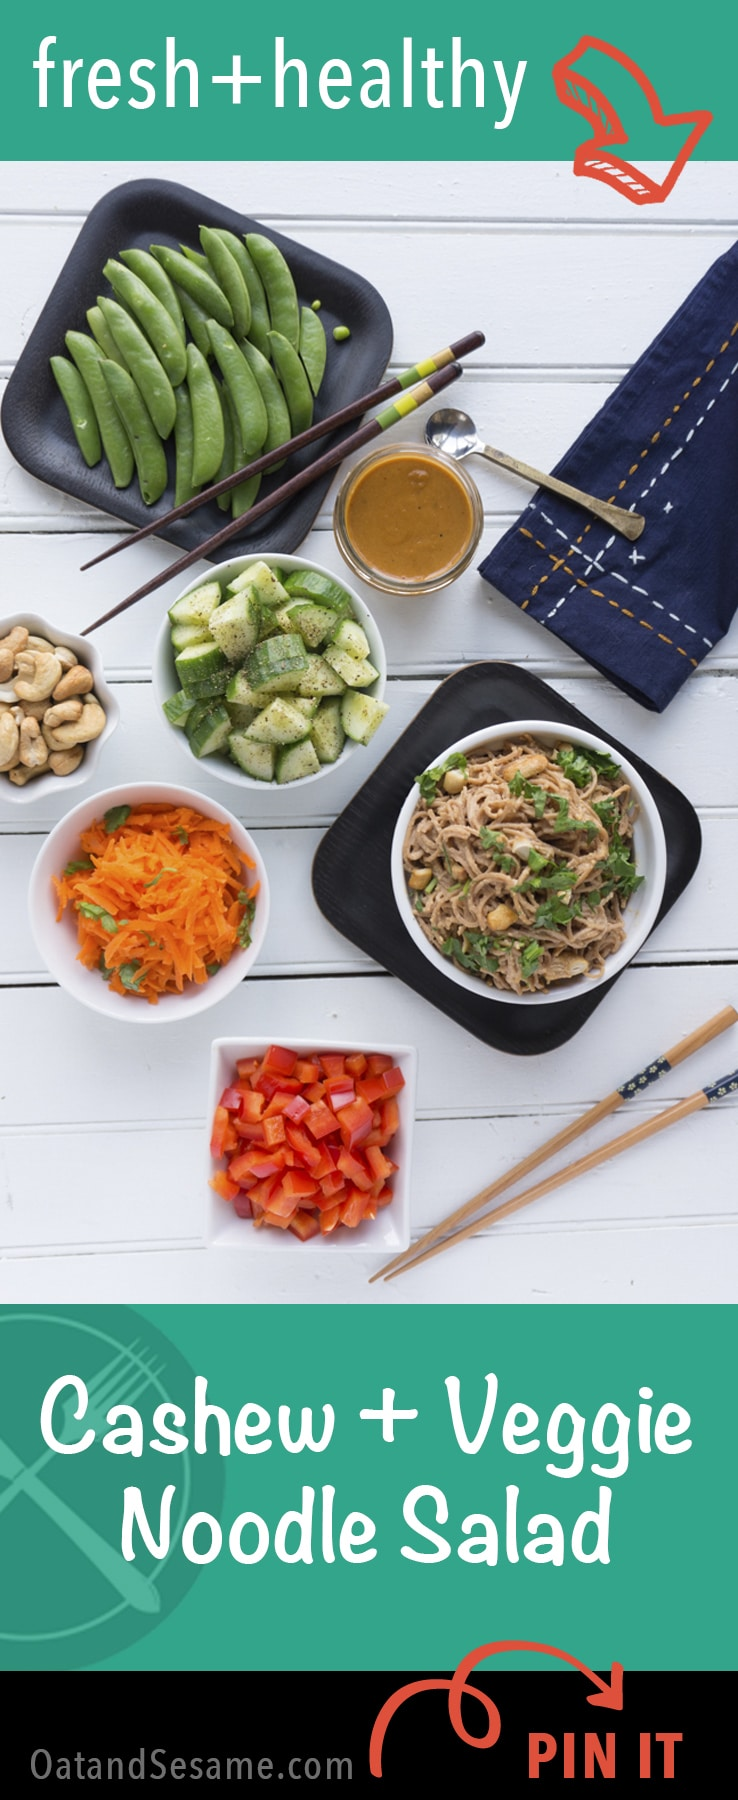 This cold cashew noodle salad is great for #mealprep. Noodles, dressing and a combo of raw veggies of your choice. NOODLES   PLANT BASED   VEGETARIAN   VEGAN   Recipe at OatandSesame.com